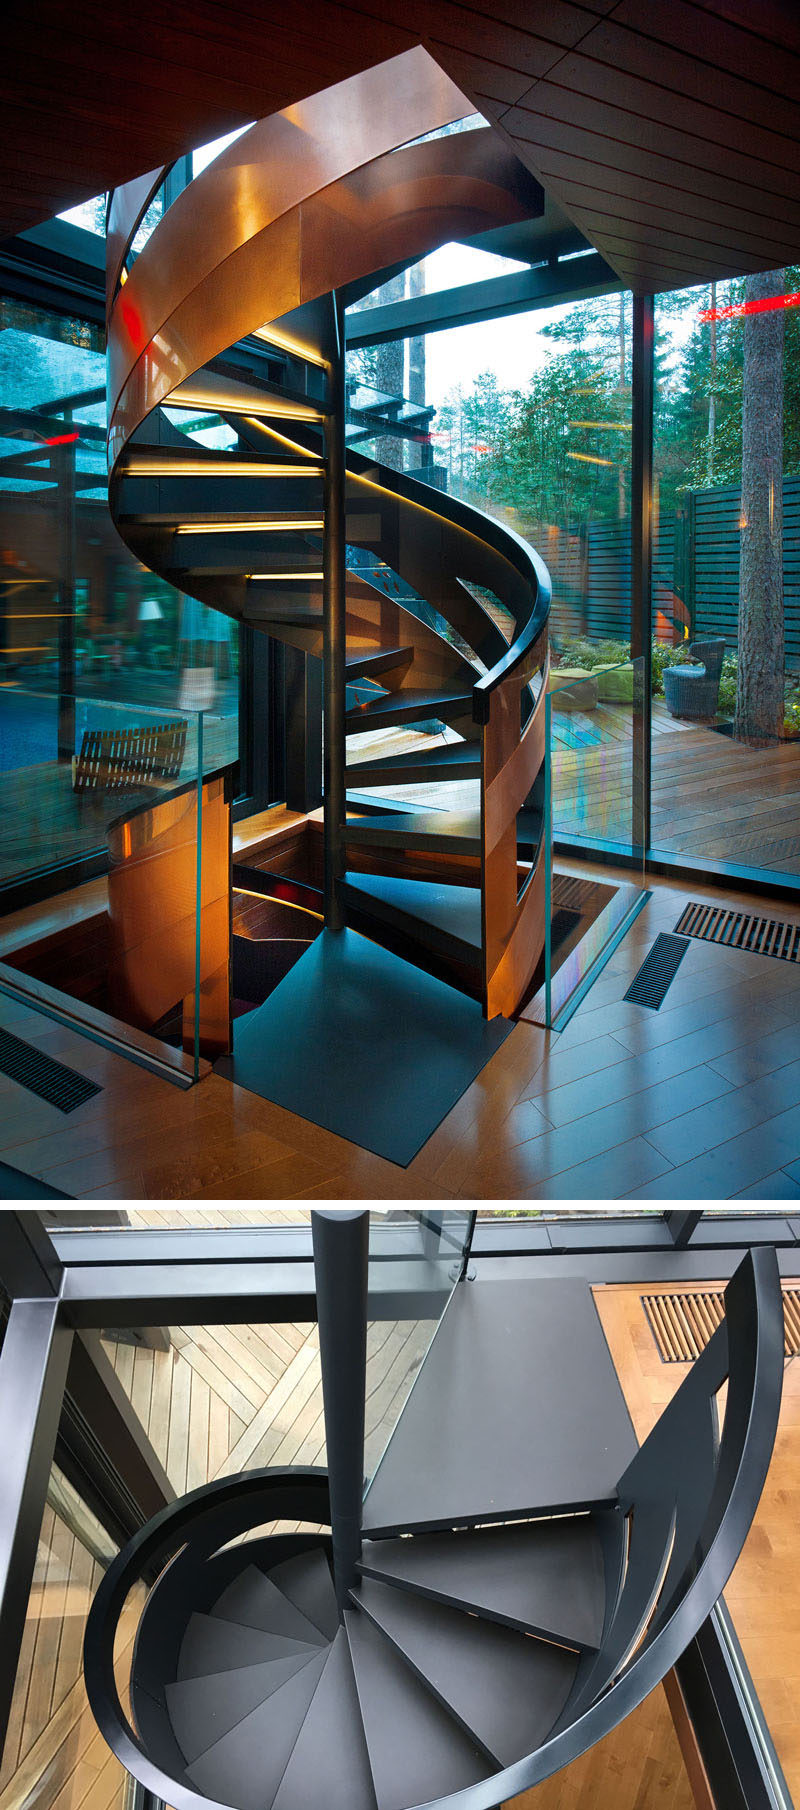 The three floors of this modern gym are connected by a spiral staircase that features handrails made from copper plates.